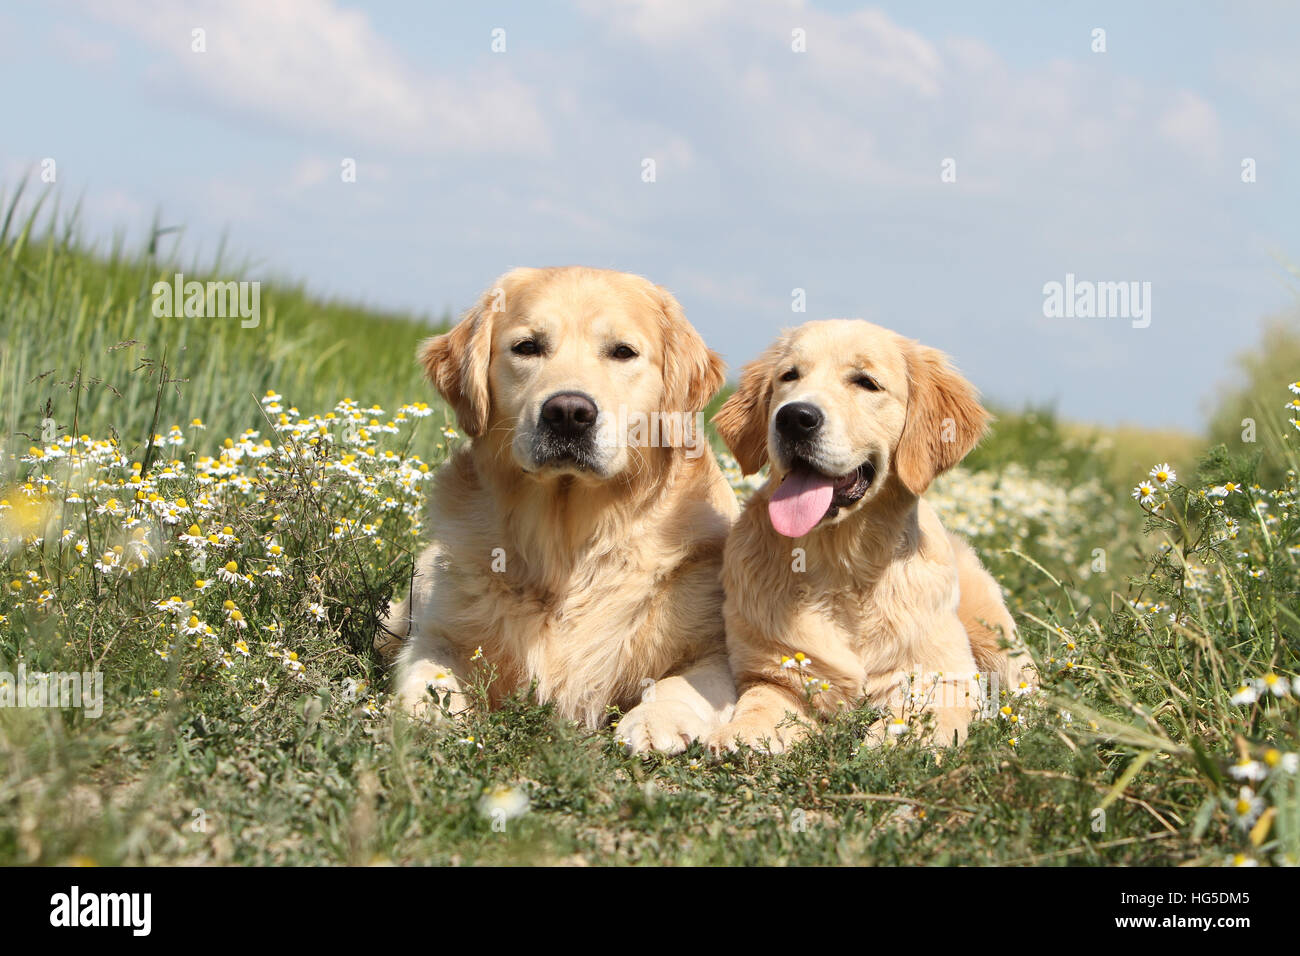 Chien Golden Retriever deux adultes sur le sol Photo Stock